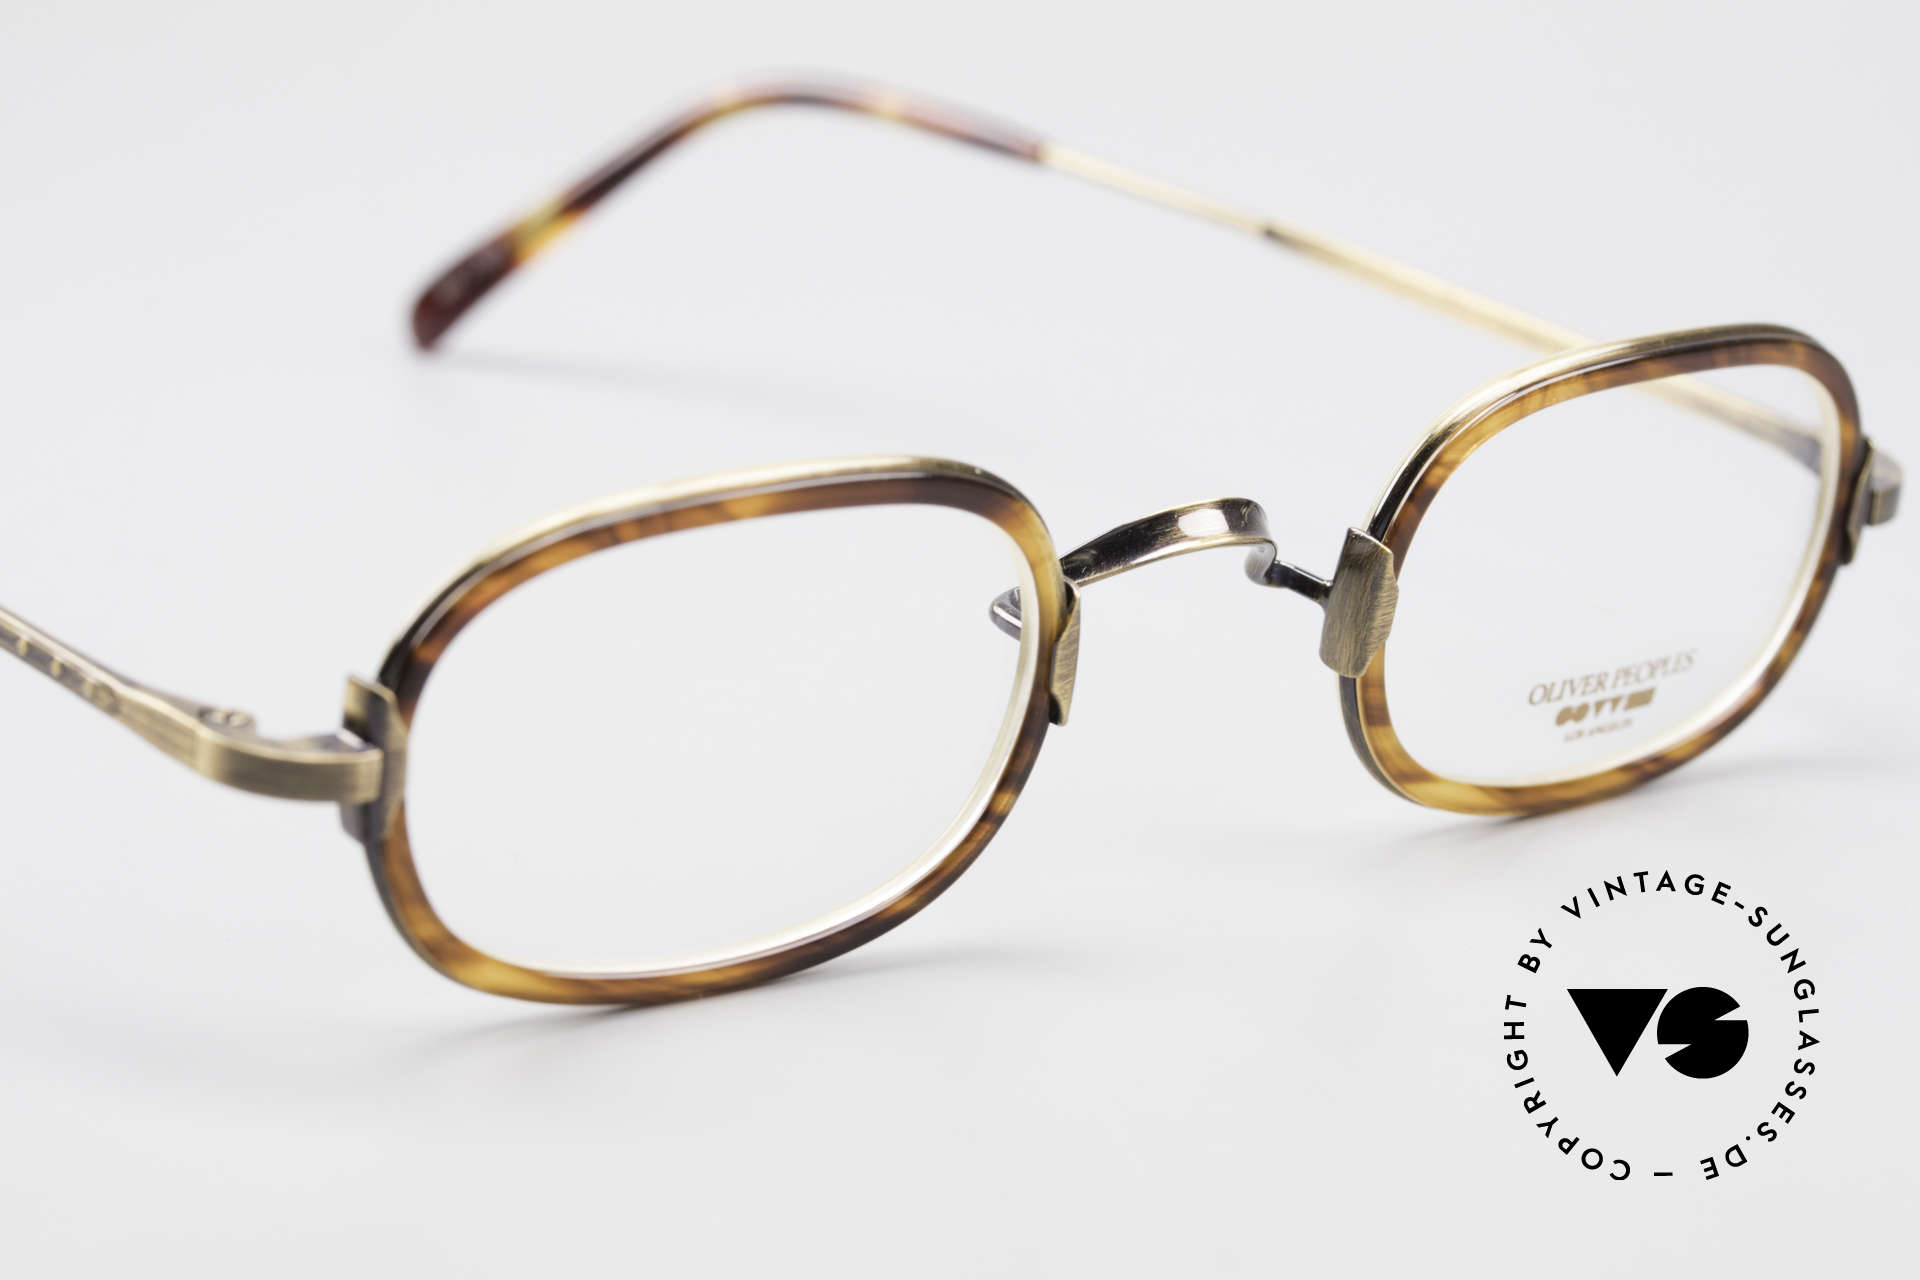 Oliver Peoples Fred Vintage Designer Frame Oval, NO RETRO fashion, but a unique 20 years old Original!, Made for Men and Women